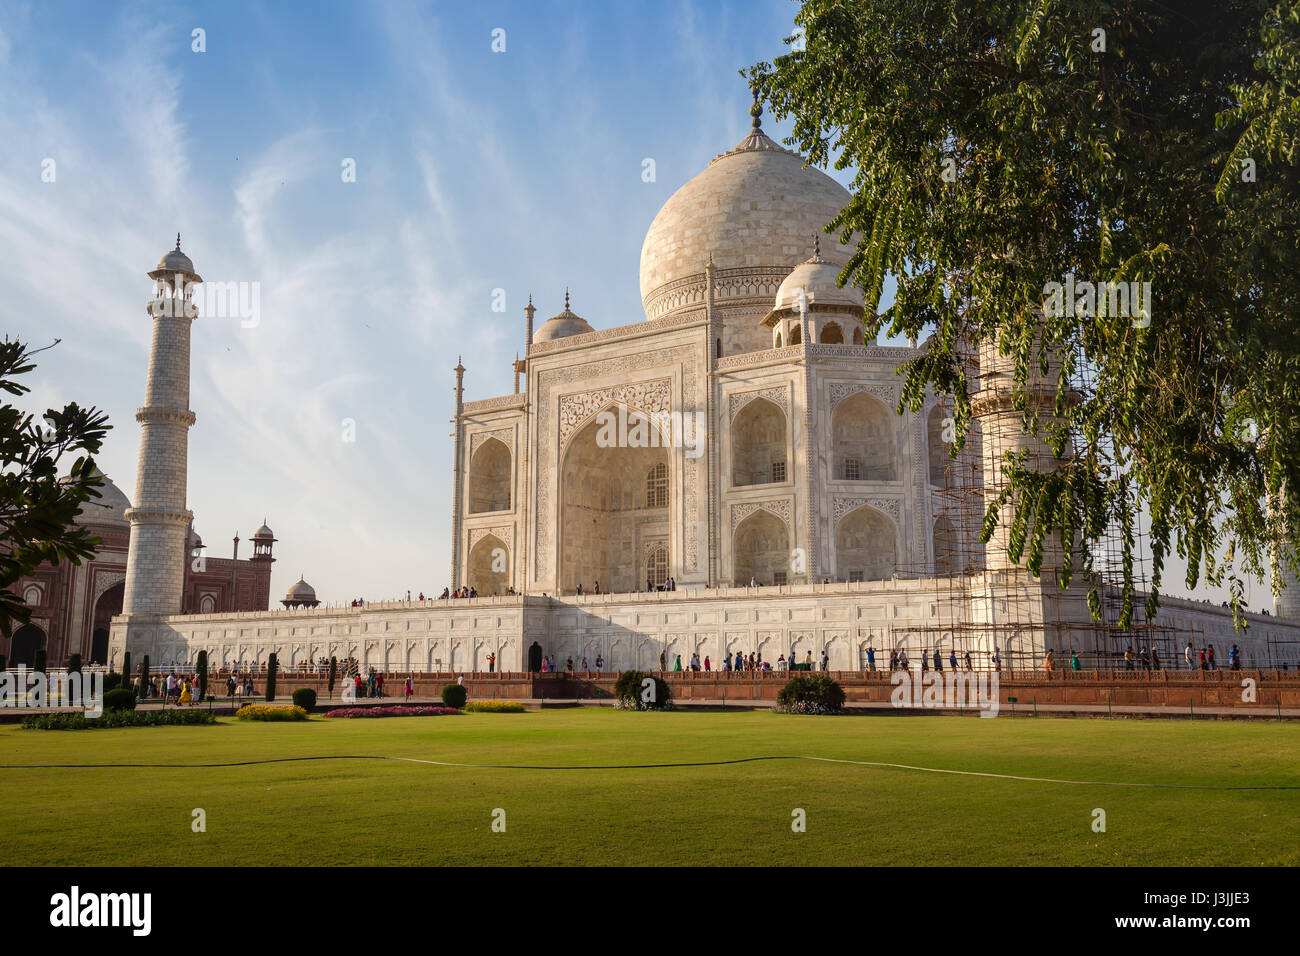 Taj Mahal white marble mausoleum built by emperor Shahjahan bears the heritage of Indian Mughal architecture. A - Stock Image